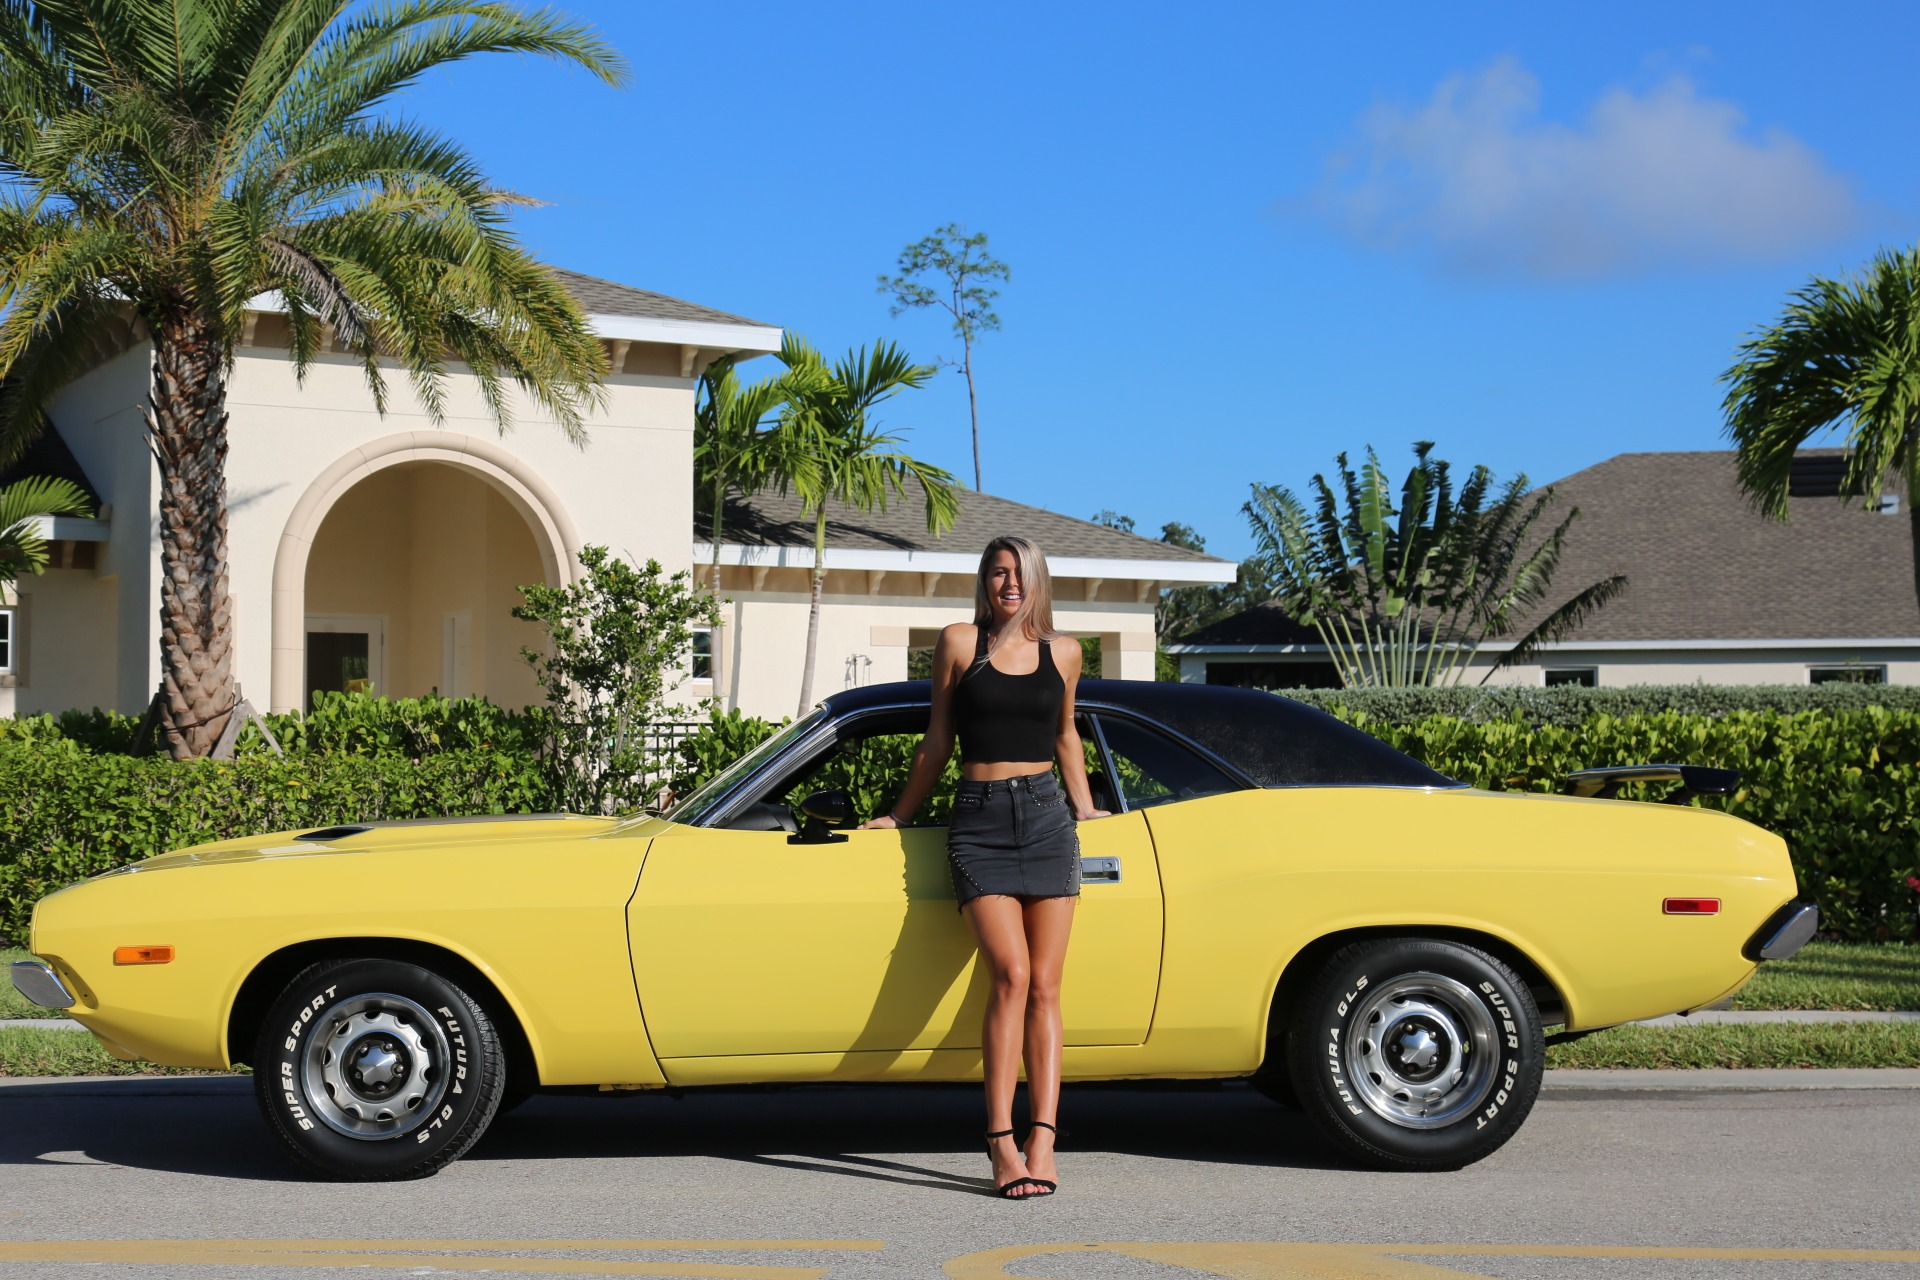 Used 1973 Dodge Challenger 440 V8 for sale Sold at Muscle Cars for Sale Inc. in Fort Myers FL 33912 5